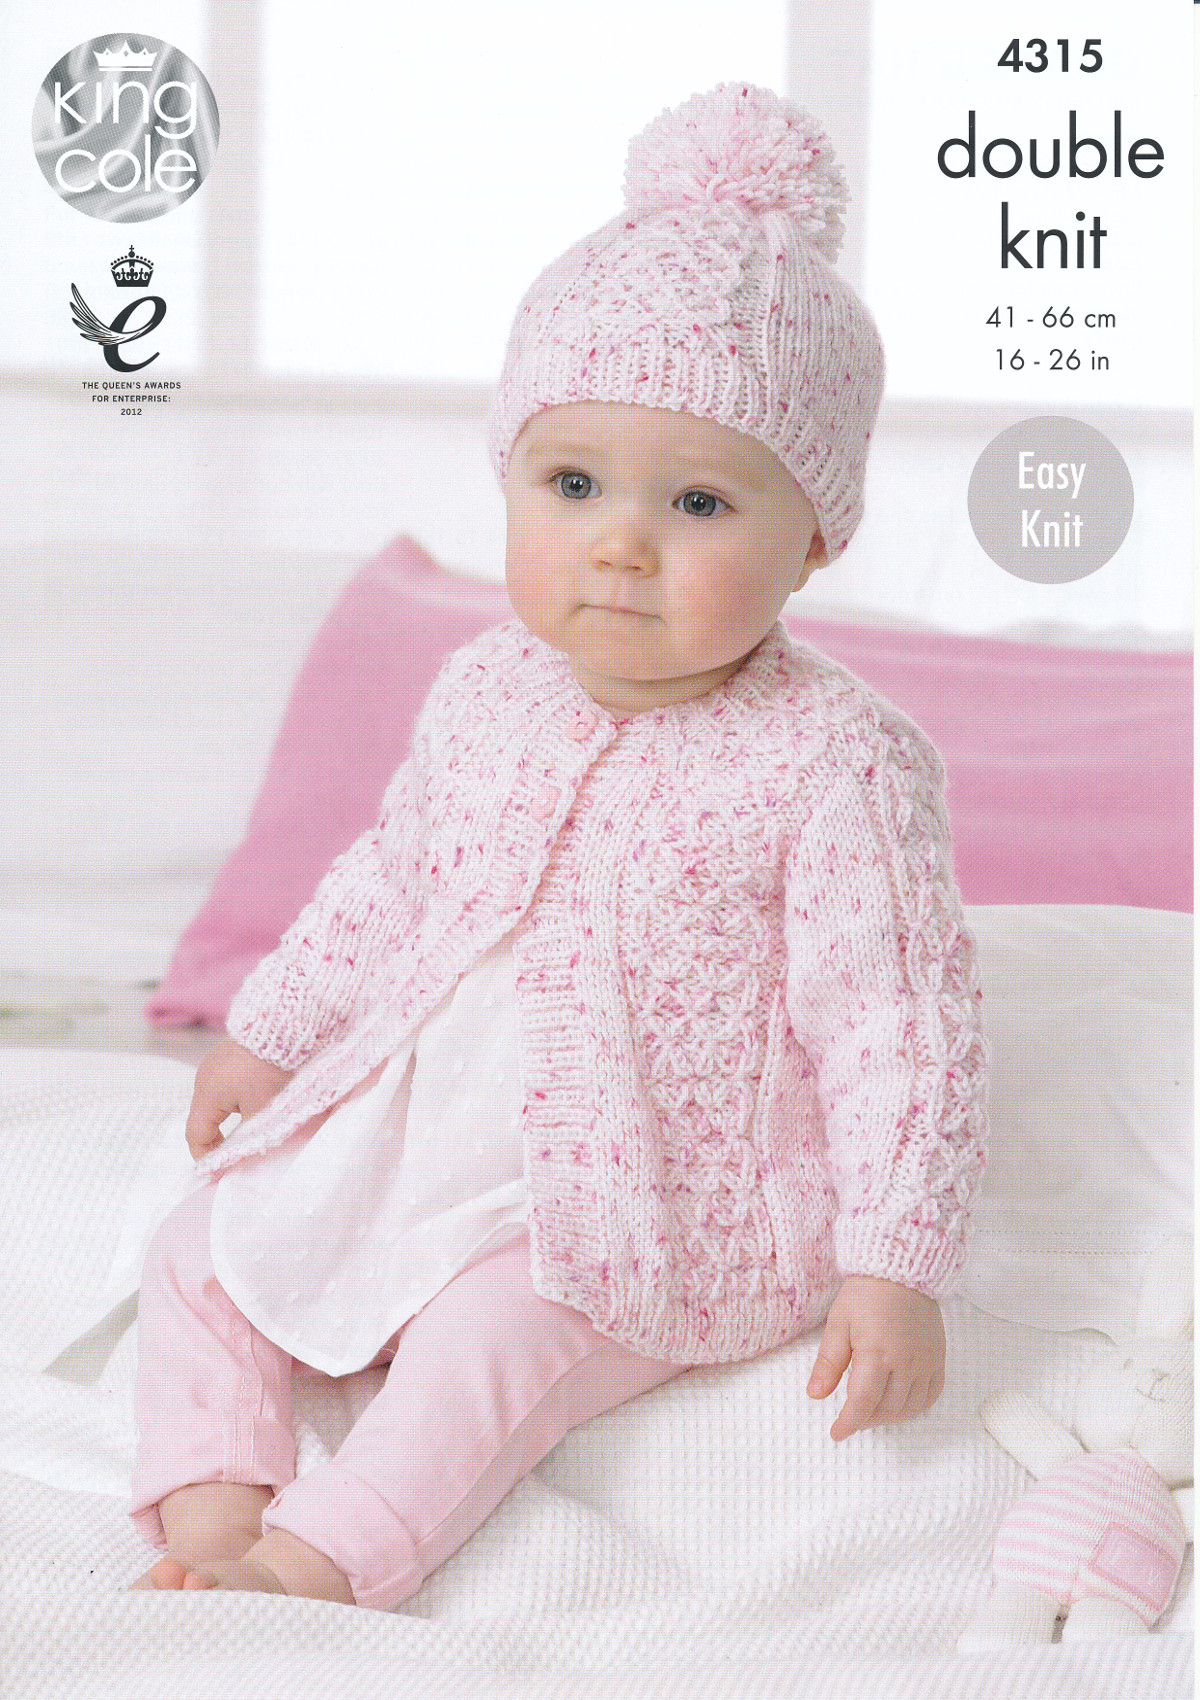 King Cole Double Knitting Pattern Baby Coat Collared ...